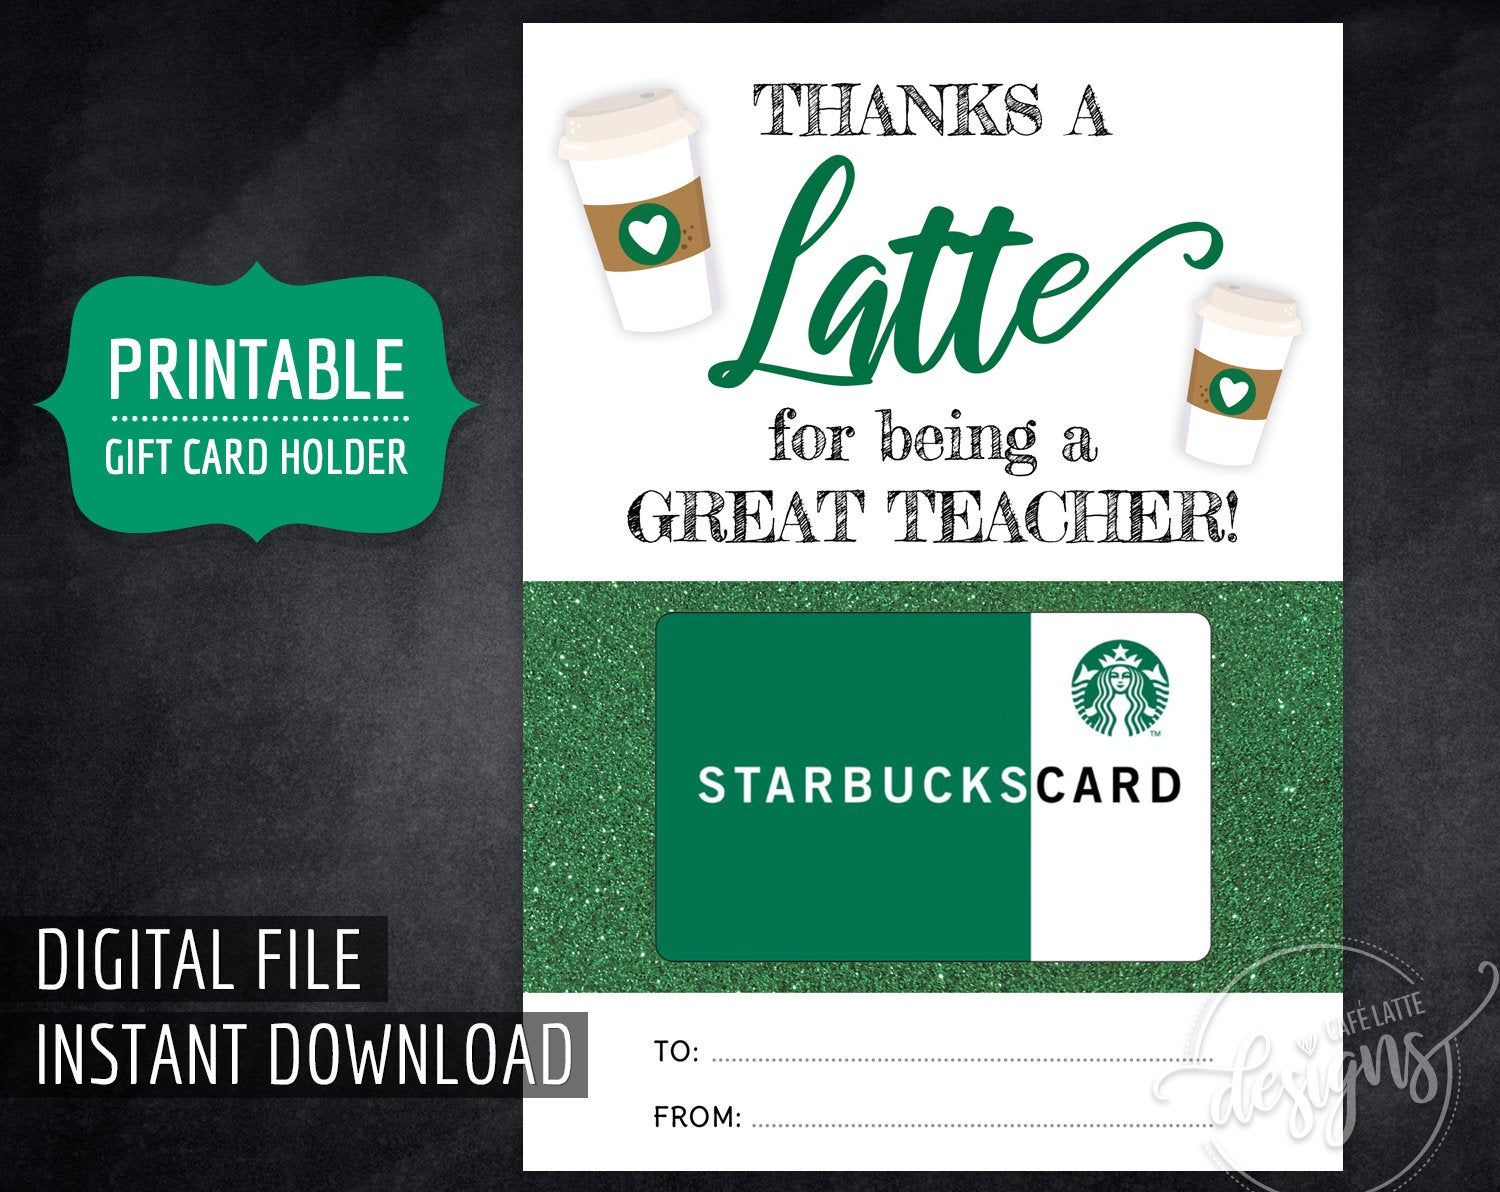 STARBUCKS Gift Card Holder for Teacher, Printable Thanks A Latte Teacher Digital Instant Download, End of Year Teacher Appreciation, Coffee